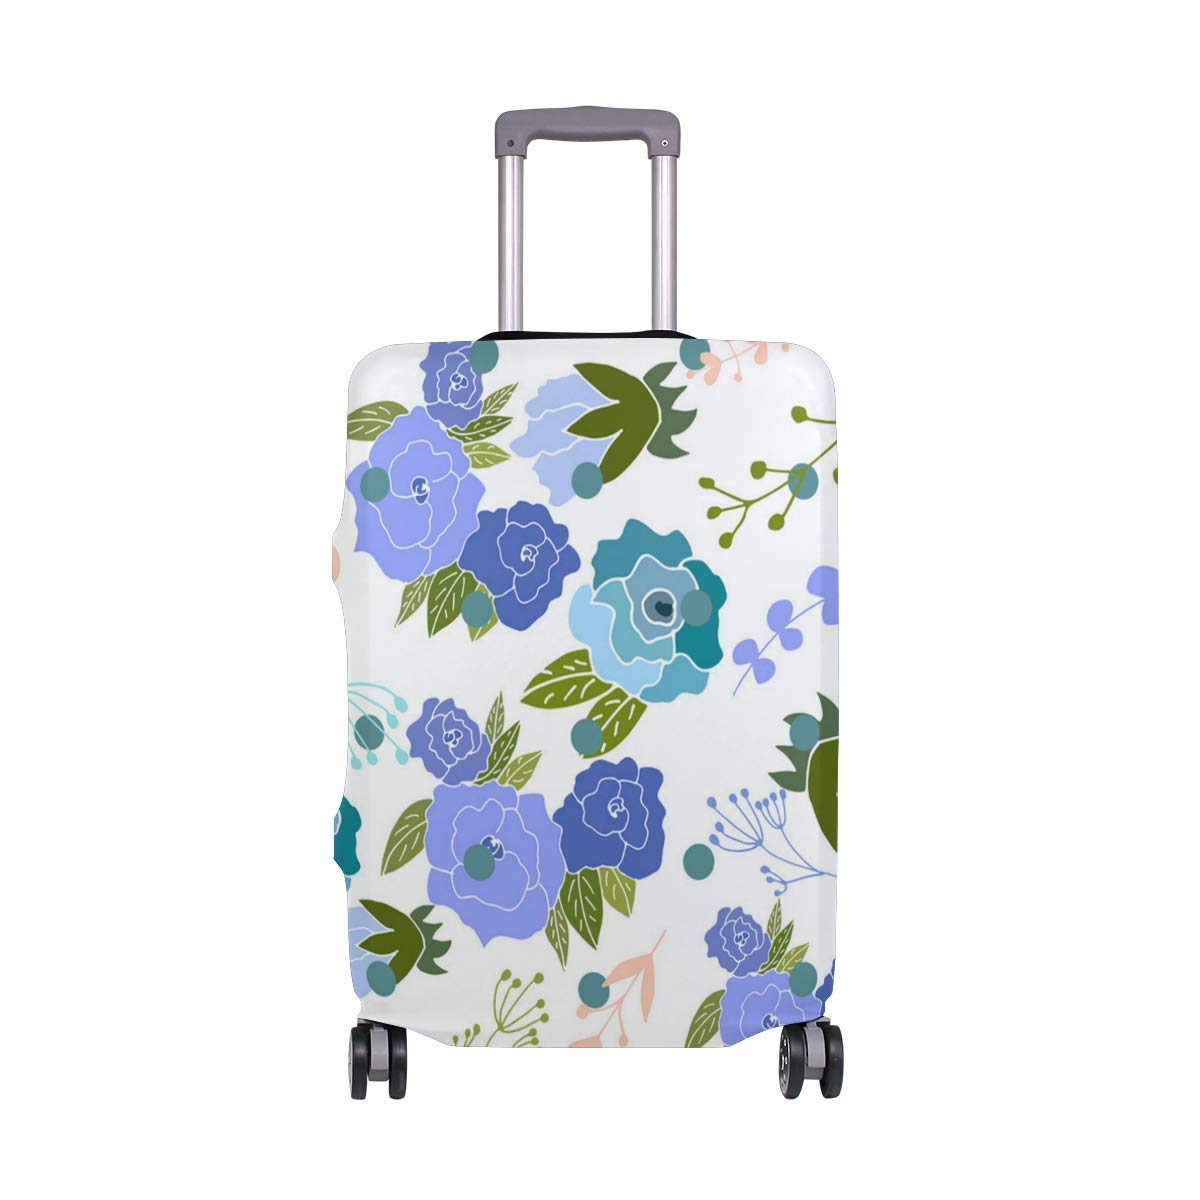 Rose Rings For Women Traveler Lightweight Rotating Luggage Protector Case Can Carry With You Can Expand Travel Bag Trolley Rolling Luggage Protector Case